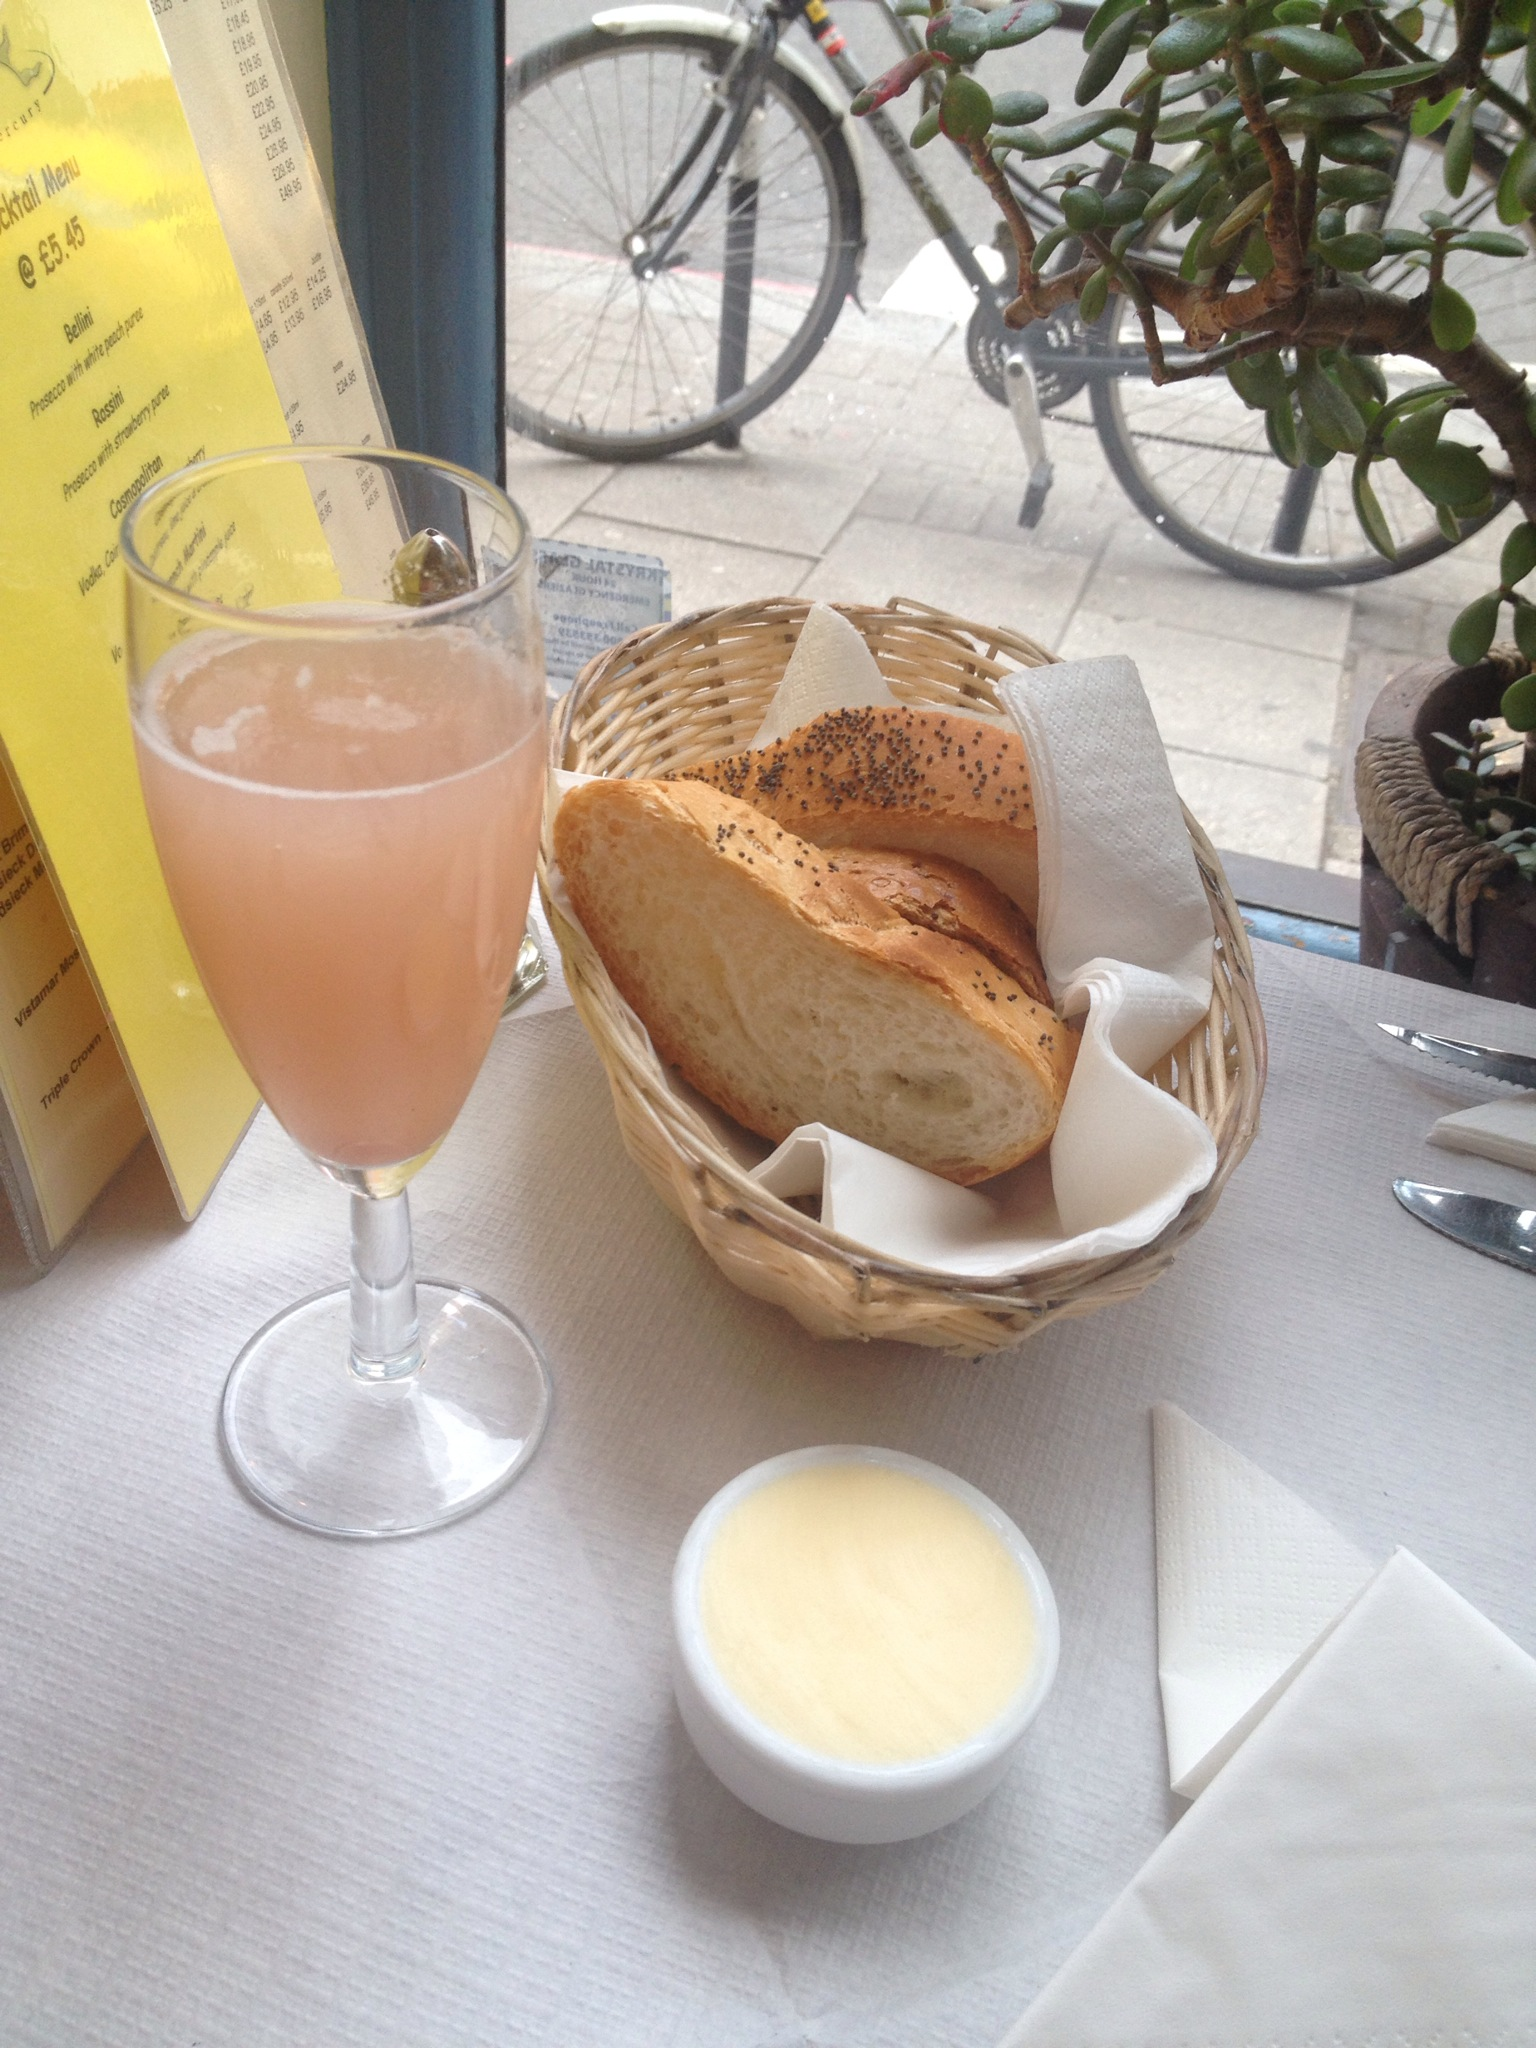 bellini and bread - Le Mercury, Upper Street Islington